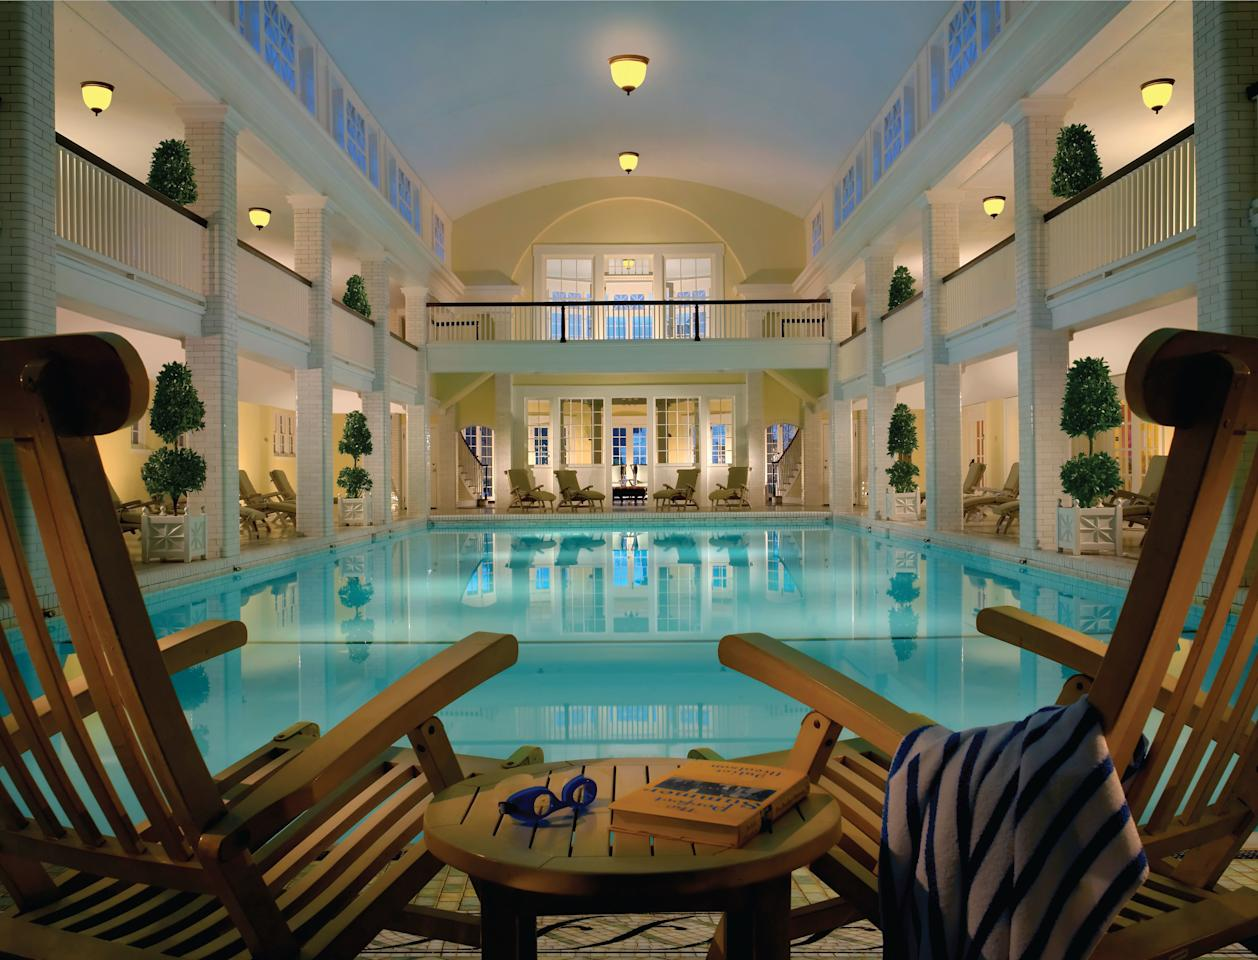 """The town boasts eight natural springs on former Native American healing grounds, once venerated for their restorative properties. These springs feed the spa at the <a rel=""""nofollow"""" href=""""https://www.omnihotels.com/hotels/bedford-springs/spa/details"""">Omni Bedford Springs</a>, where guests can enjoy the centuries-old healing practice of """"taking the waters"""" during a Bedford Bath Ritual, which uses water from the restorative springs and also features a steam and cold plunge. <em>Rates from $250.</em>"""